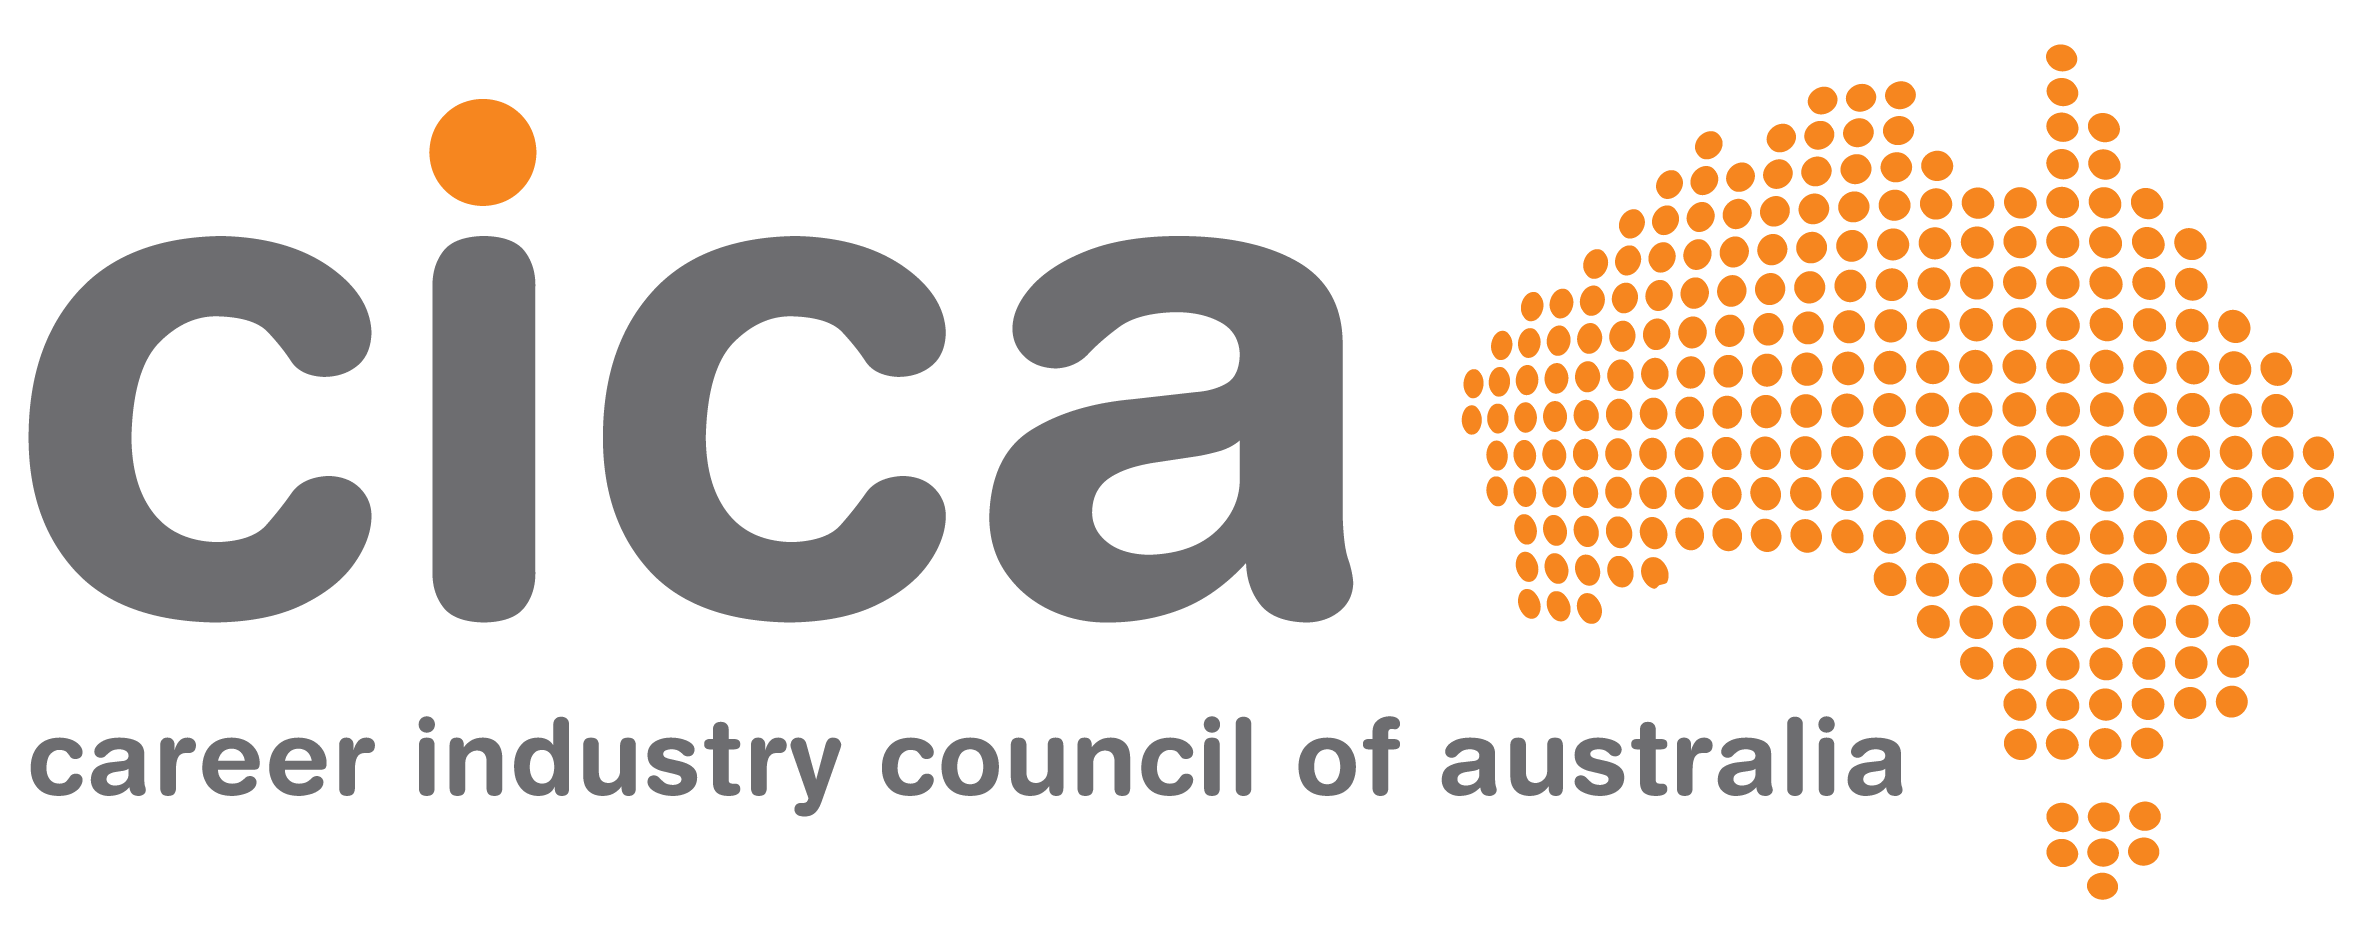 career industry council of Australia